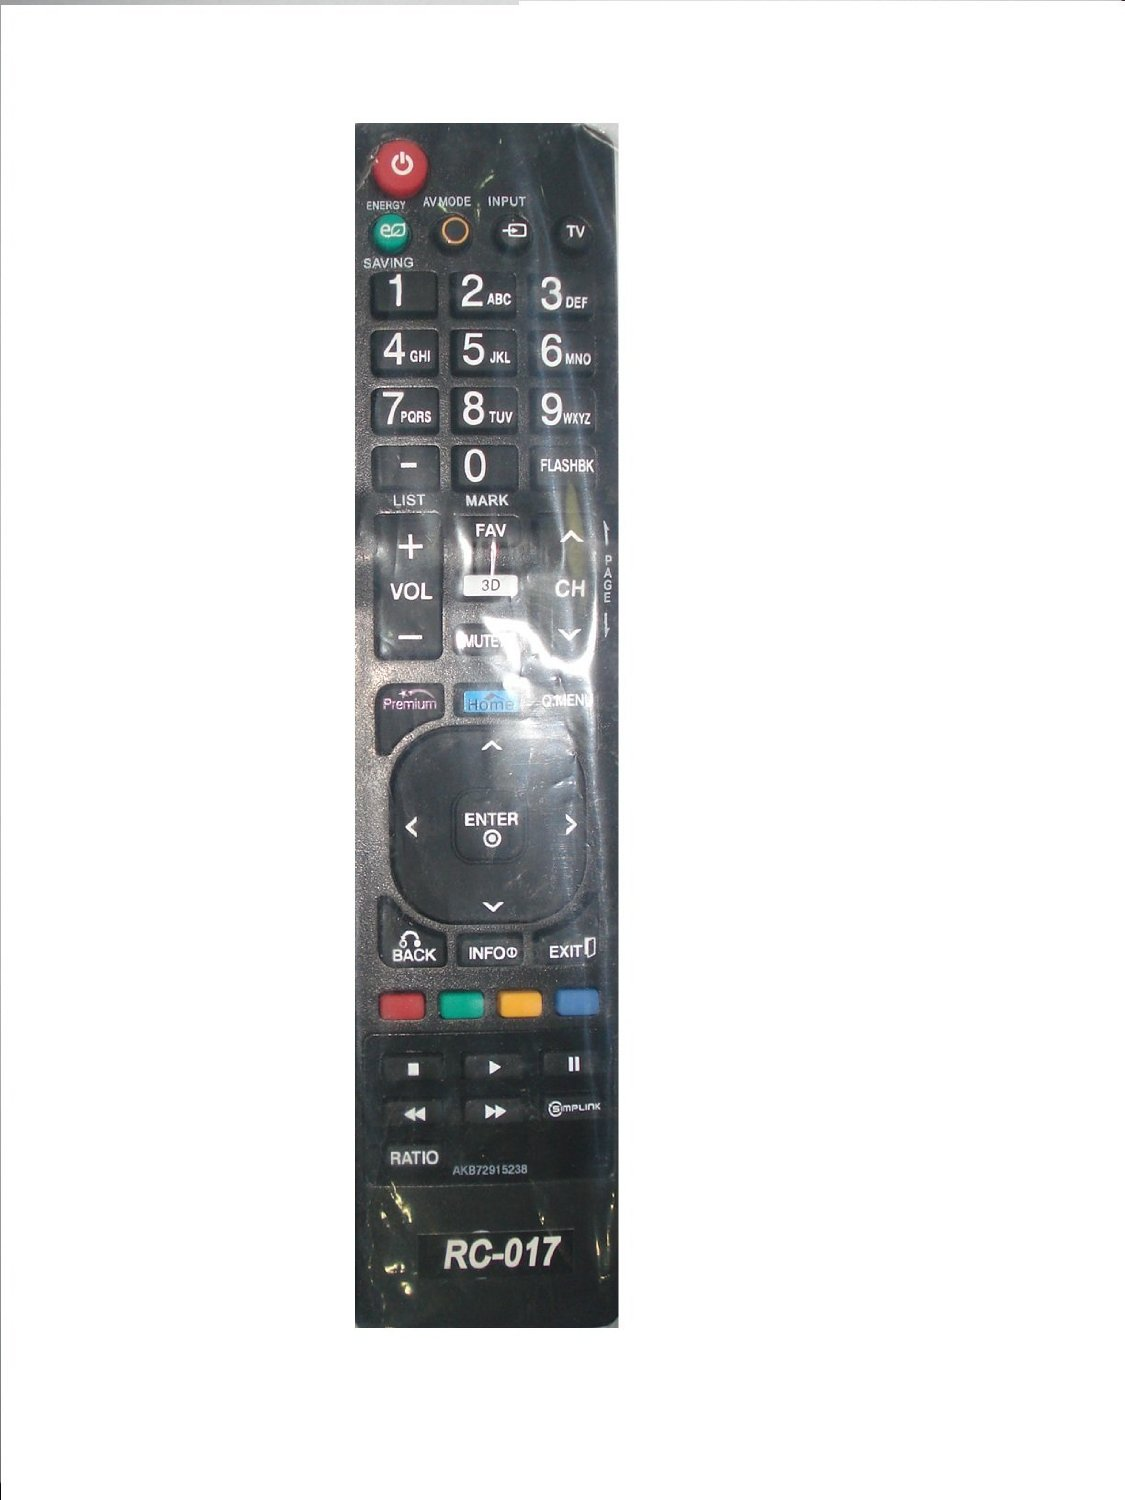 New LG Replaced Lost AKB72915238 3D TV Remote for LG 42LW5700 47LW5700 42LV3700 47LV3700 55LV3700 42LV5400 55LW5700 3D TV